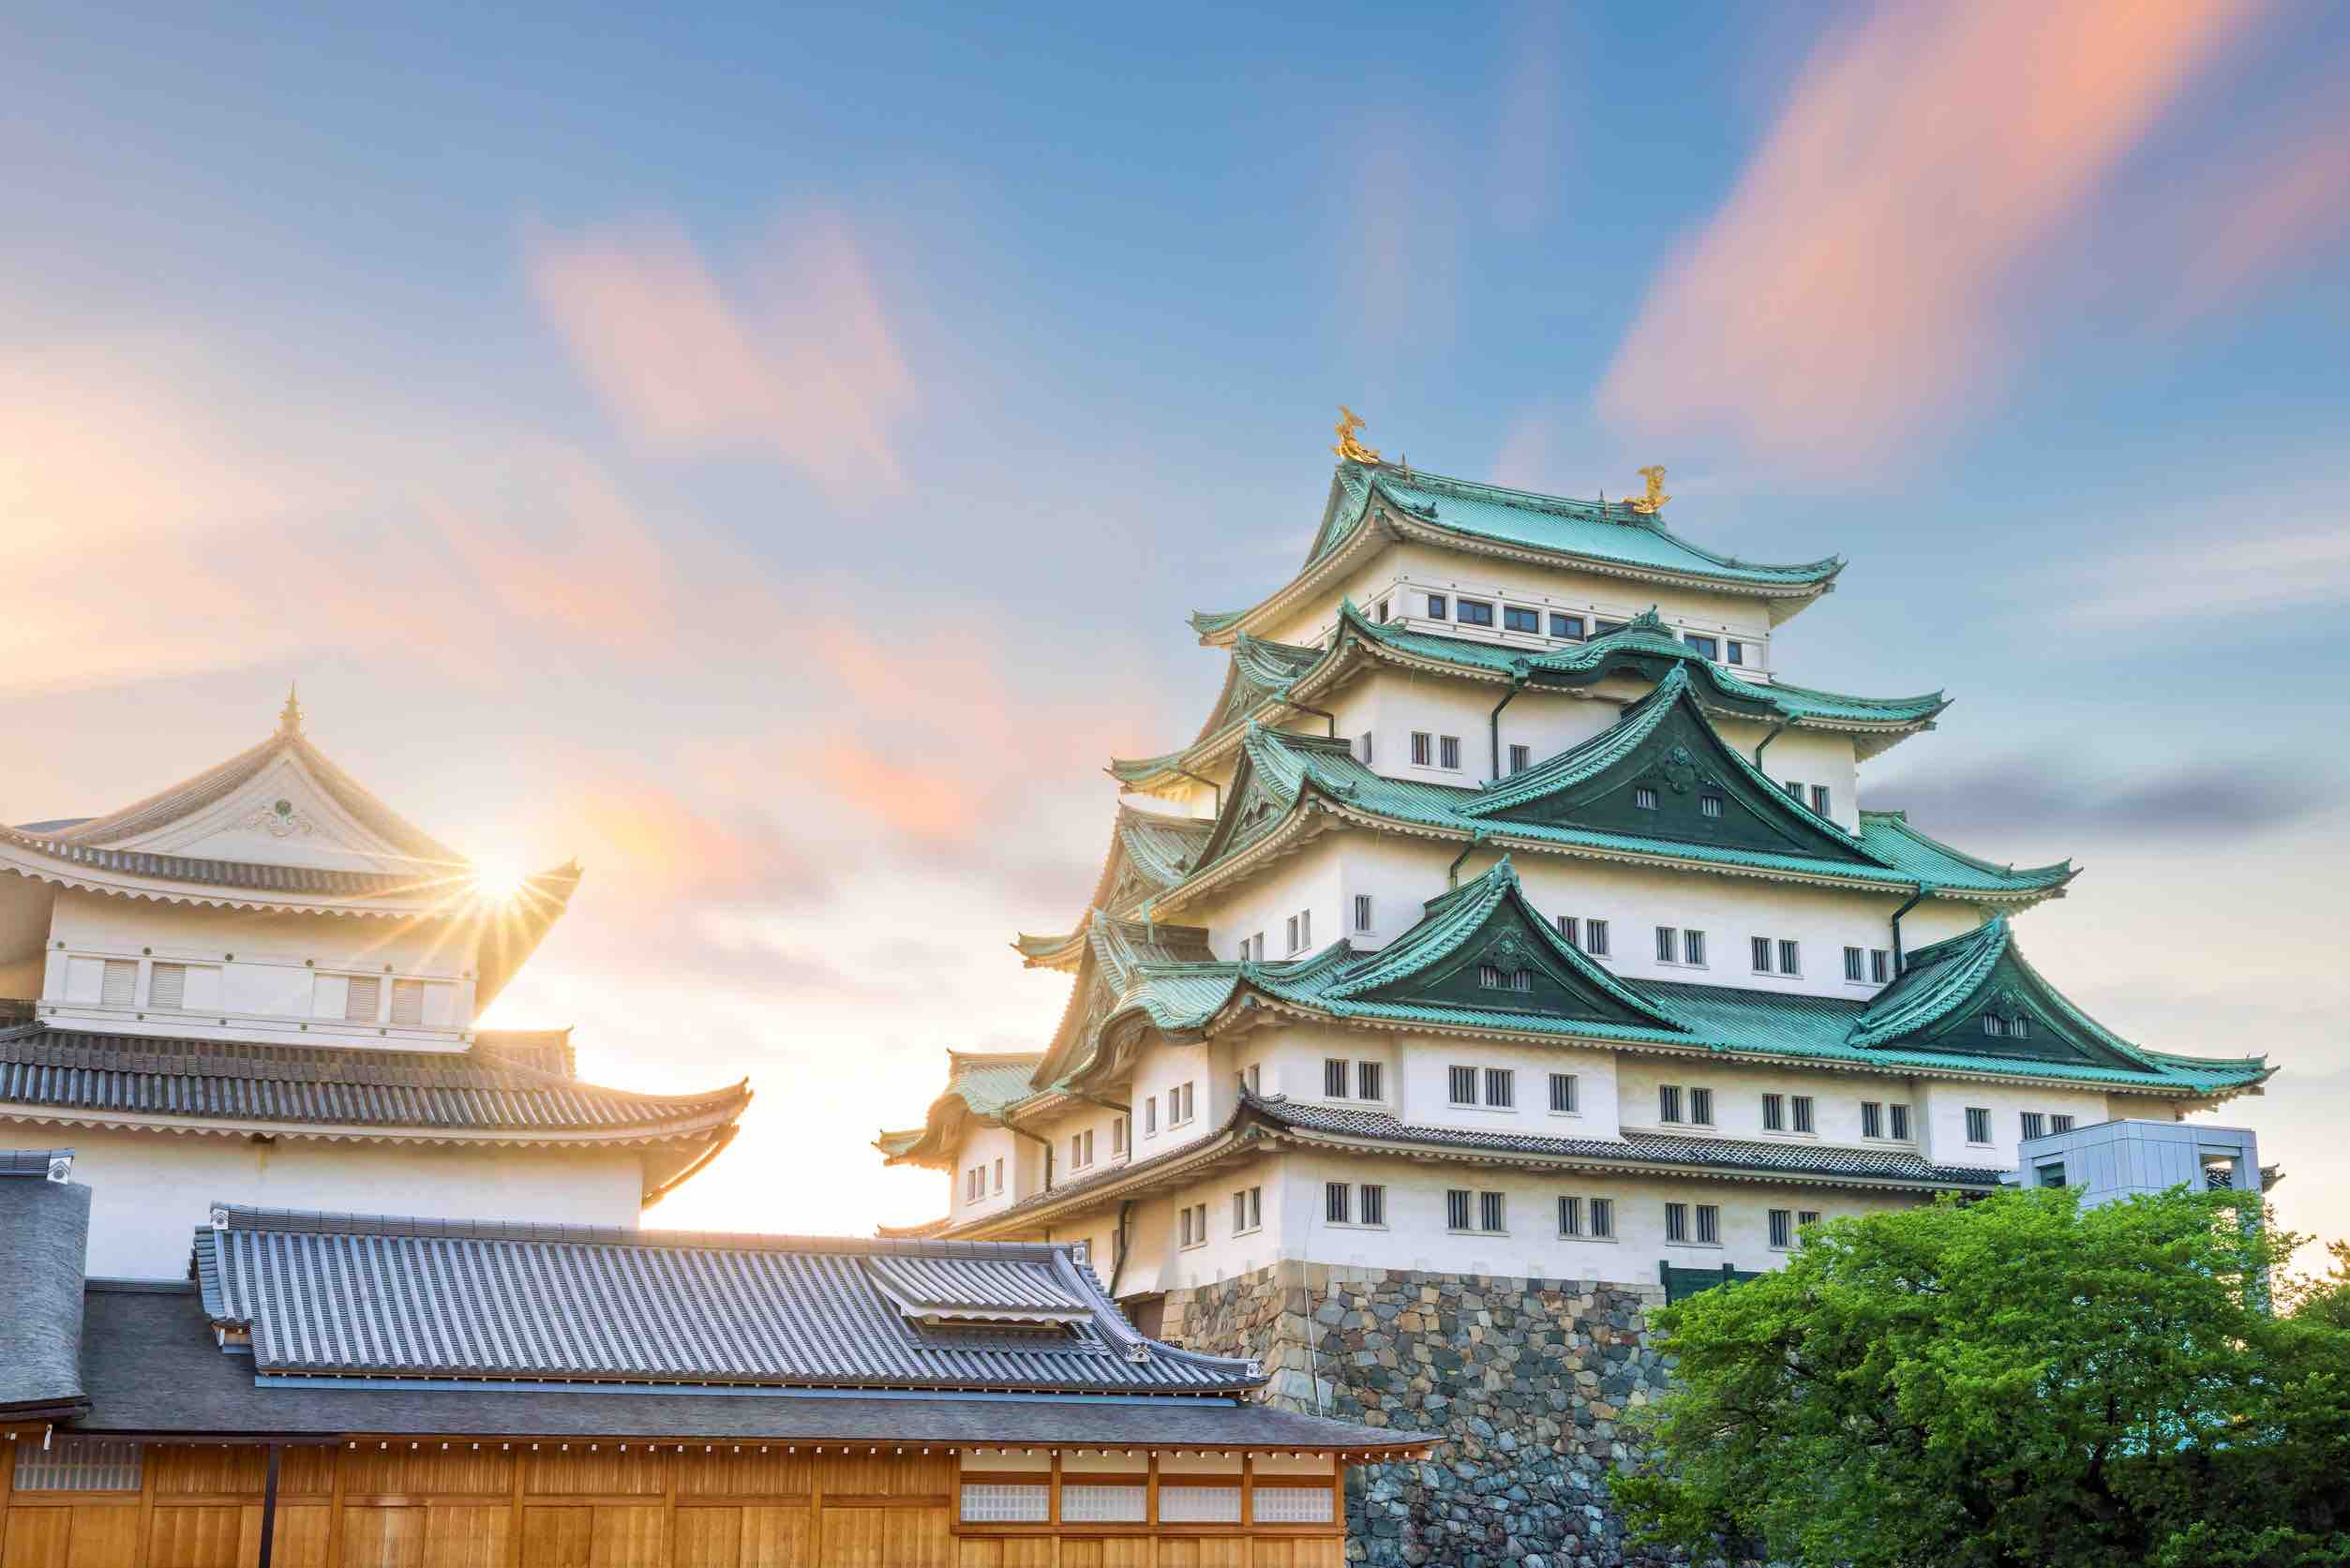 Japan Is Rebooting Travel With 7 Countries, With More On The Way